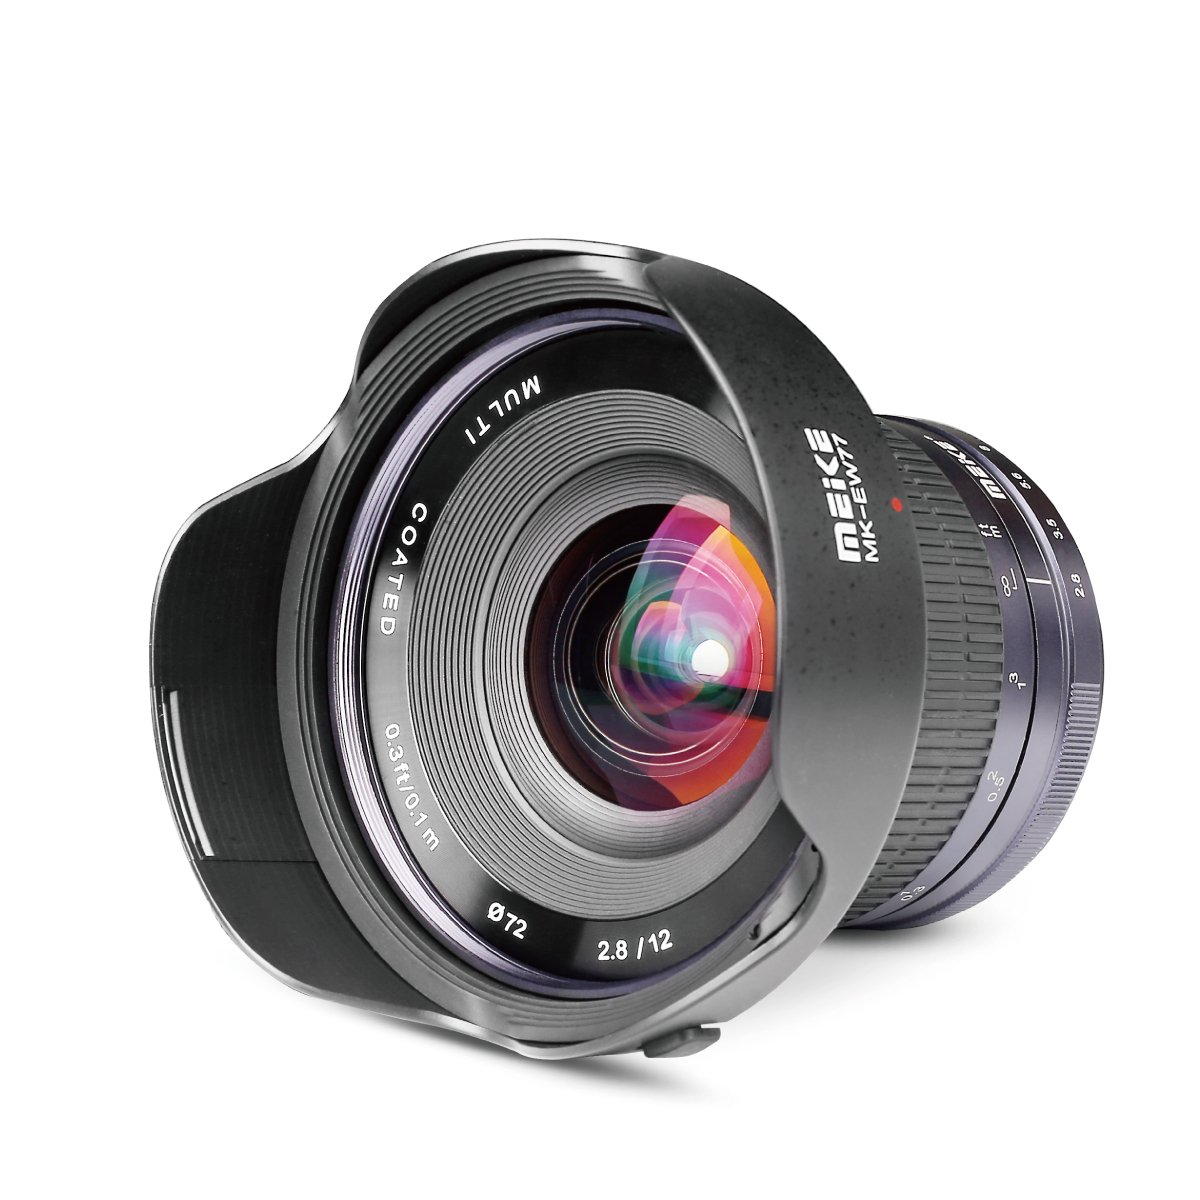 Meike 12mm f/2.8 Ultra Wide Angle Manual Fixed Lens with Removeable Hood for MFT Micro Four Thirds Panasonic/Olympus Mirrorless Camera by MEKE